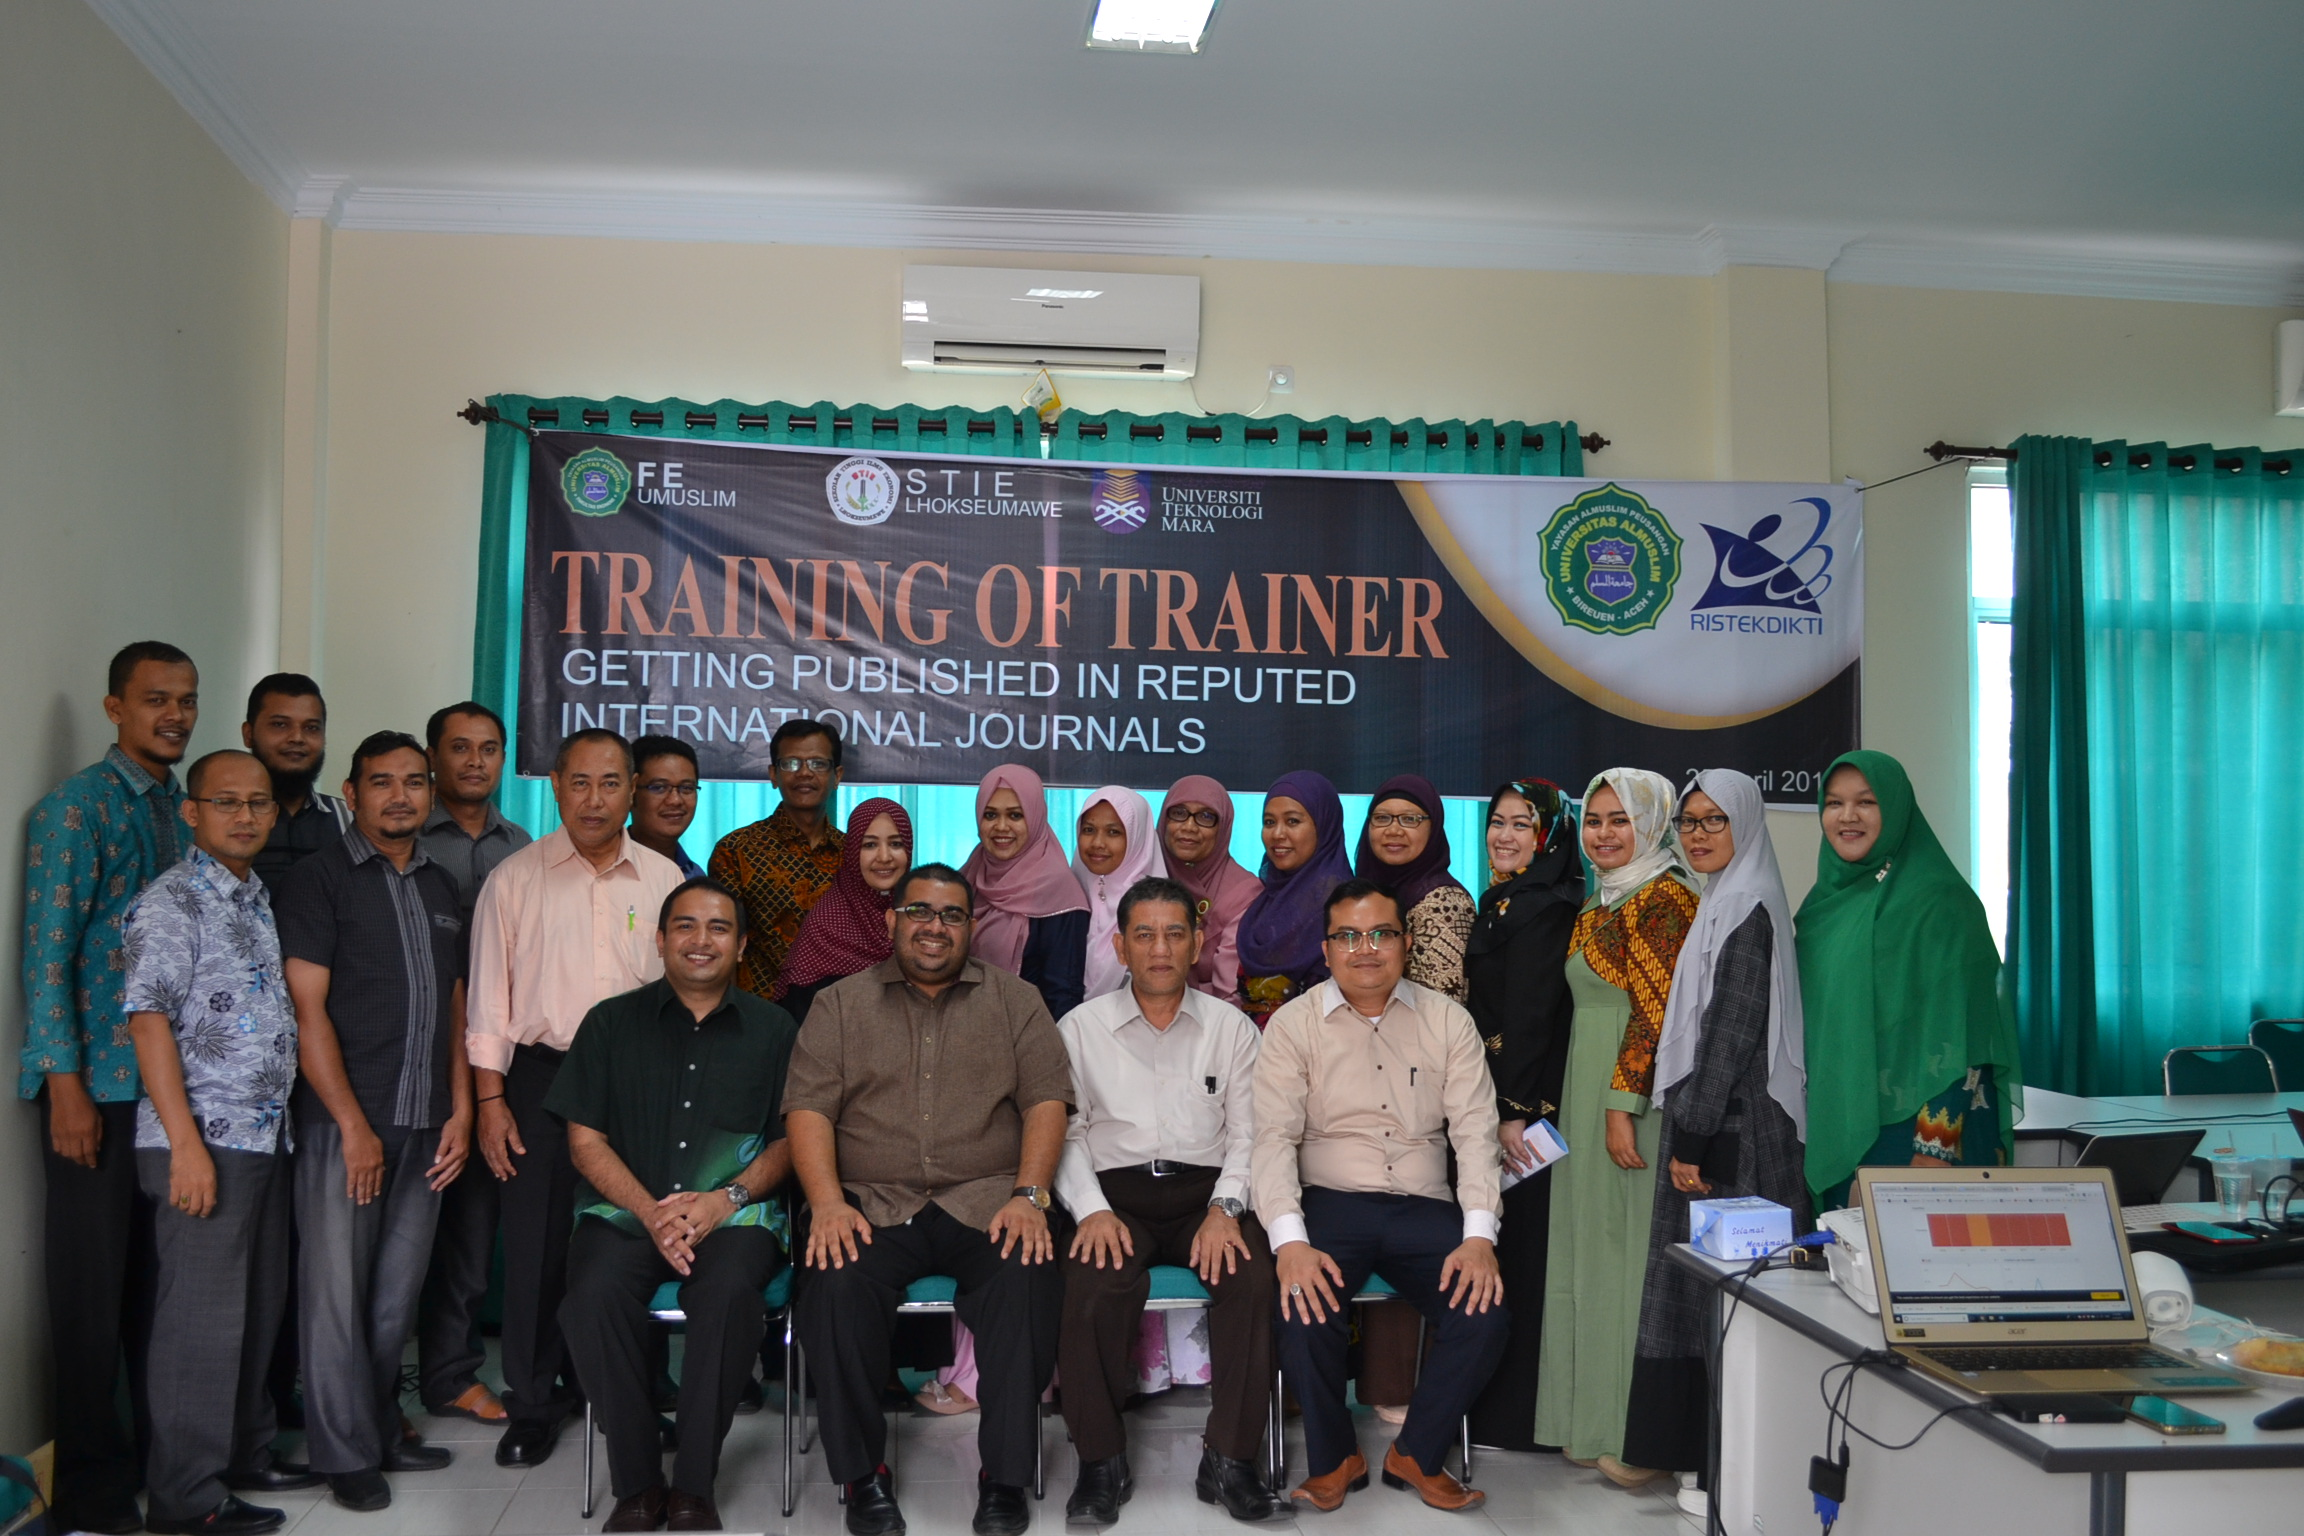 Training of Trainer writing